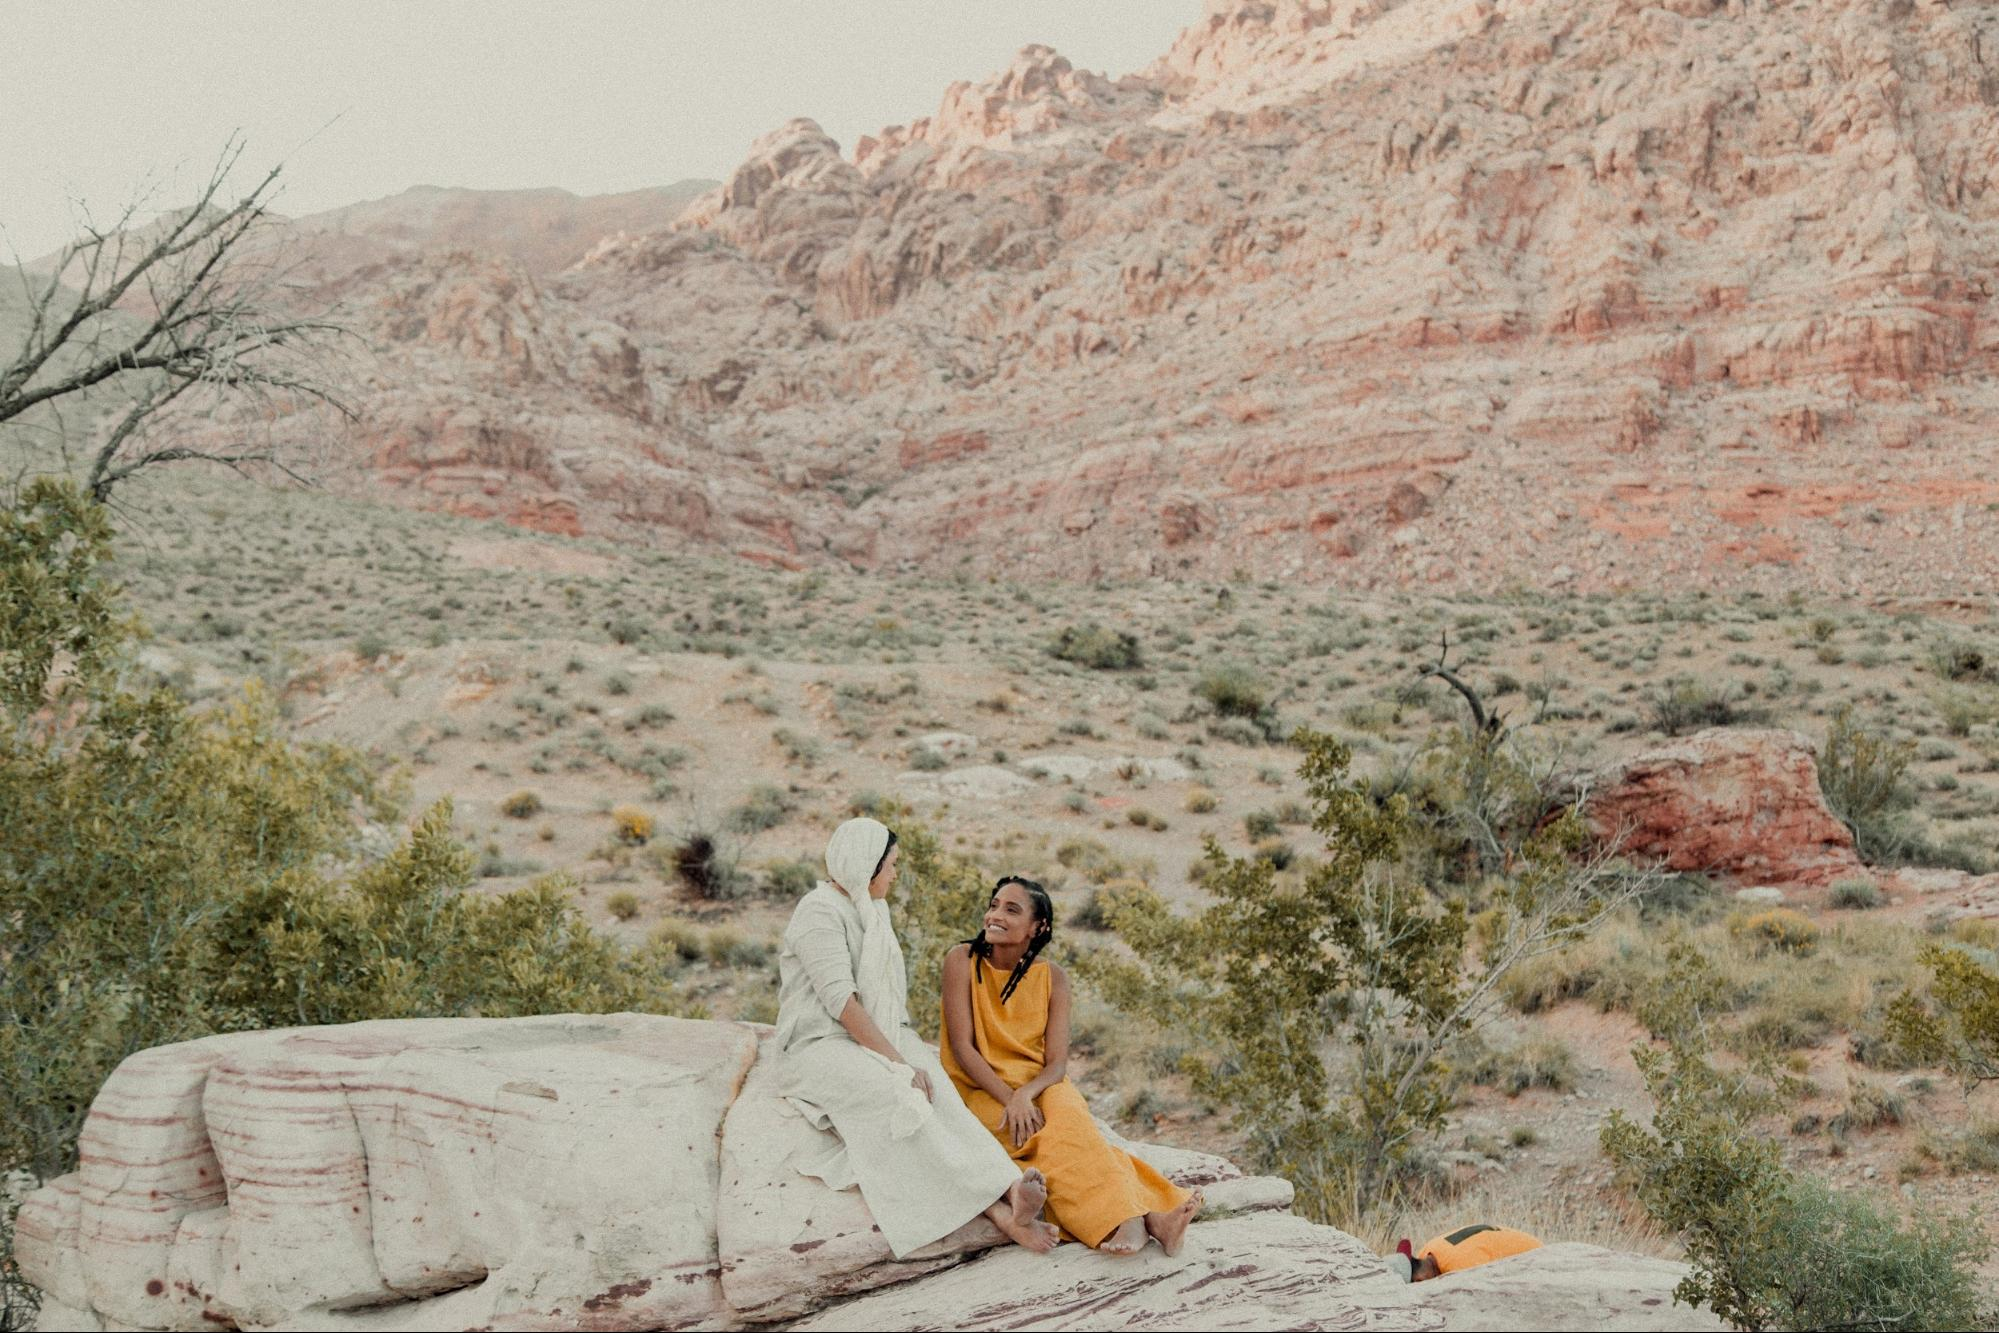 Quina Aragon and Karen Ellis sitting on a rock in the desert.